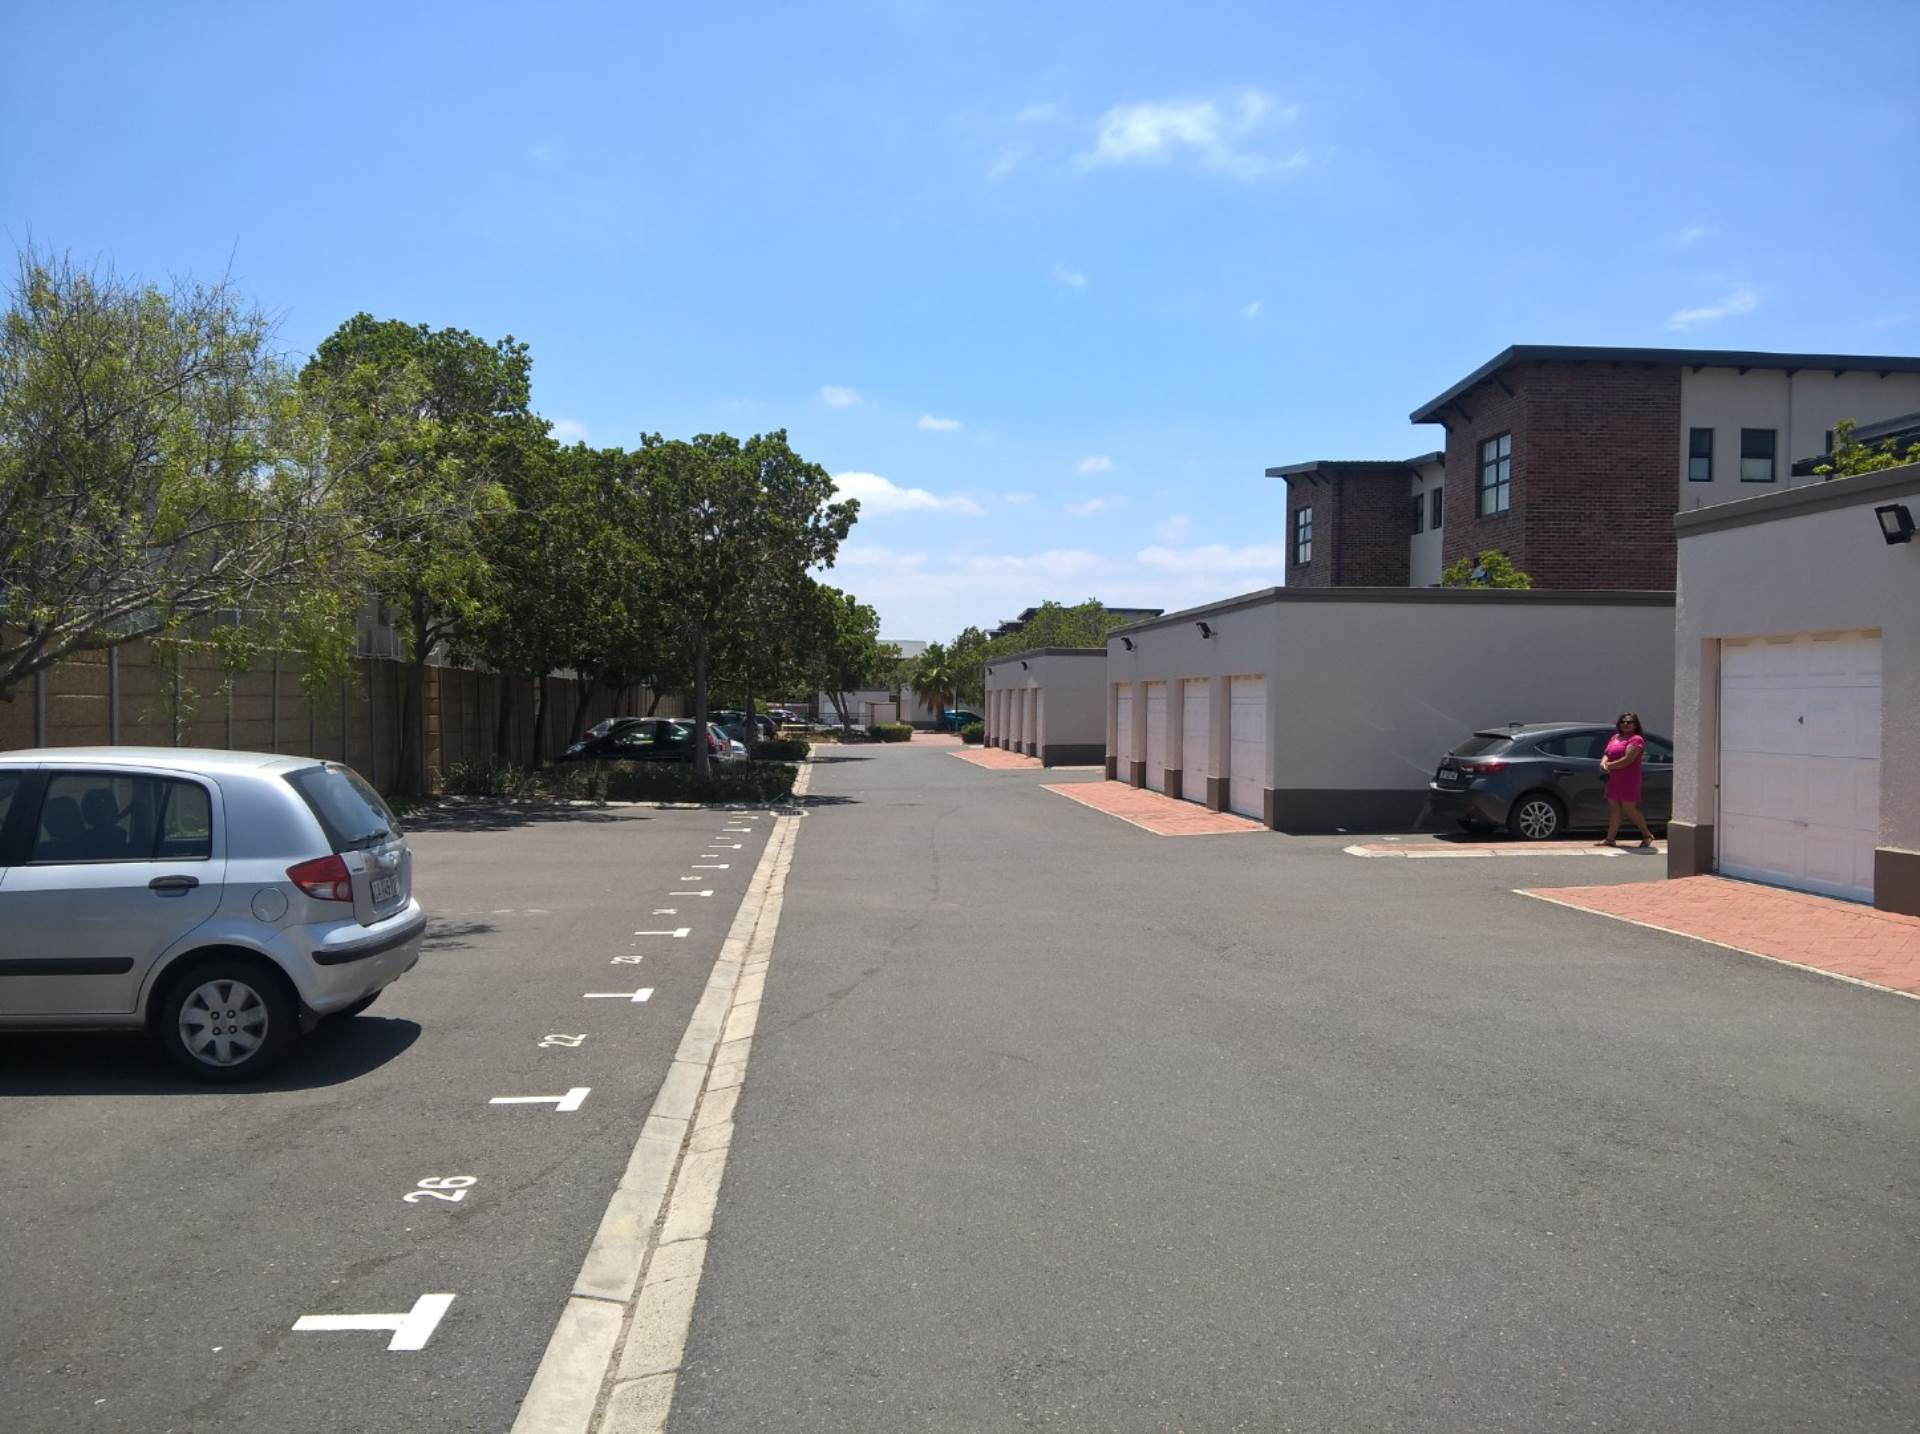 For-rent Units 2 Bedrooms Parking Western Cape Listings And